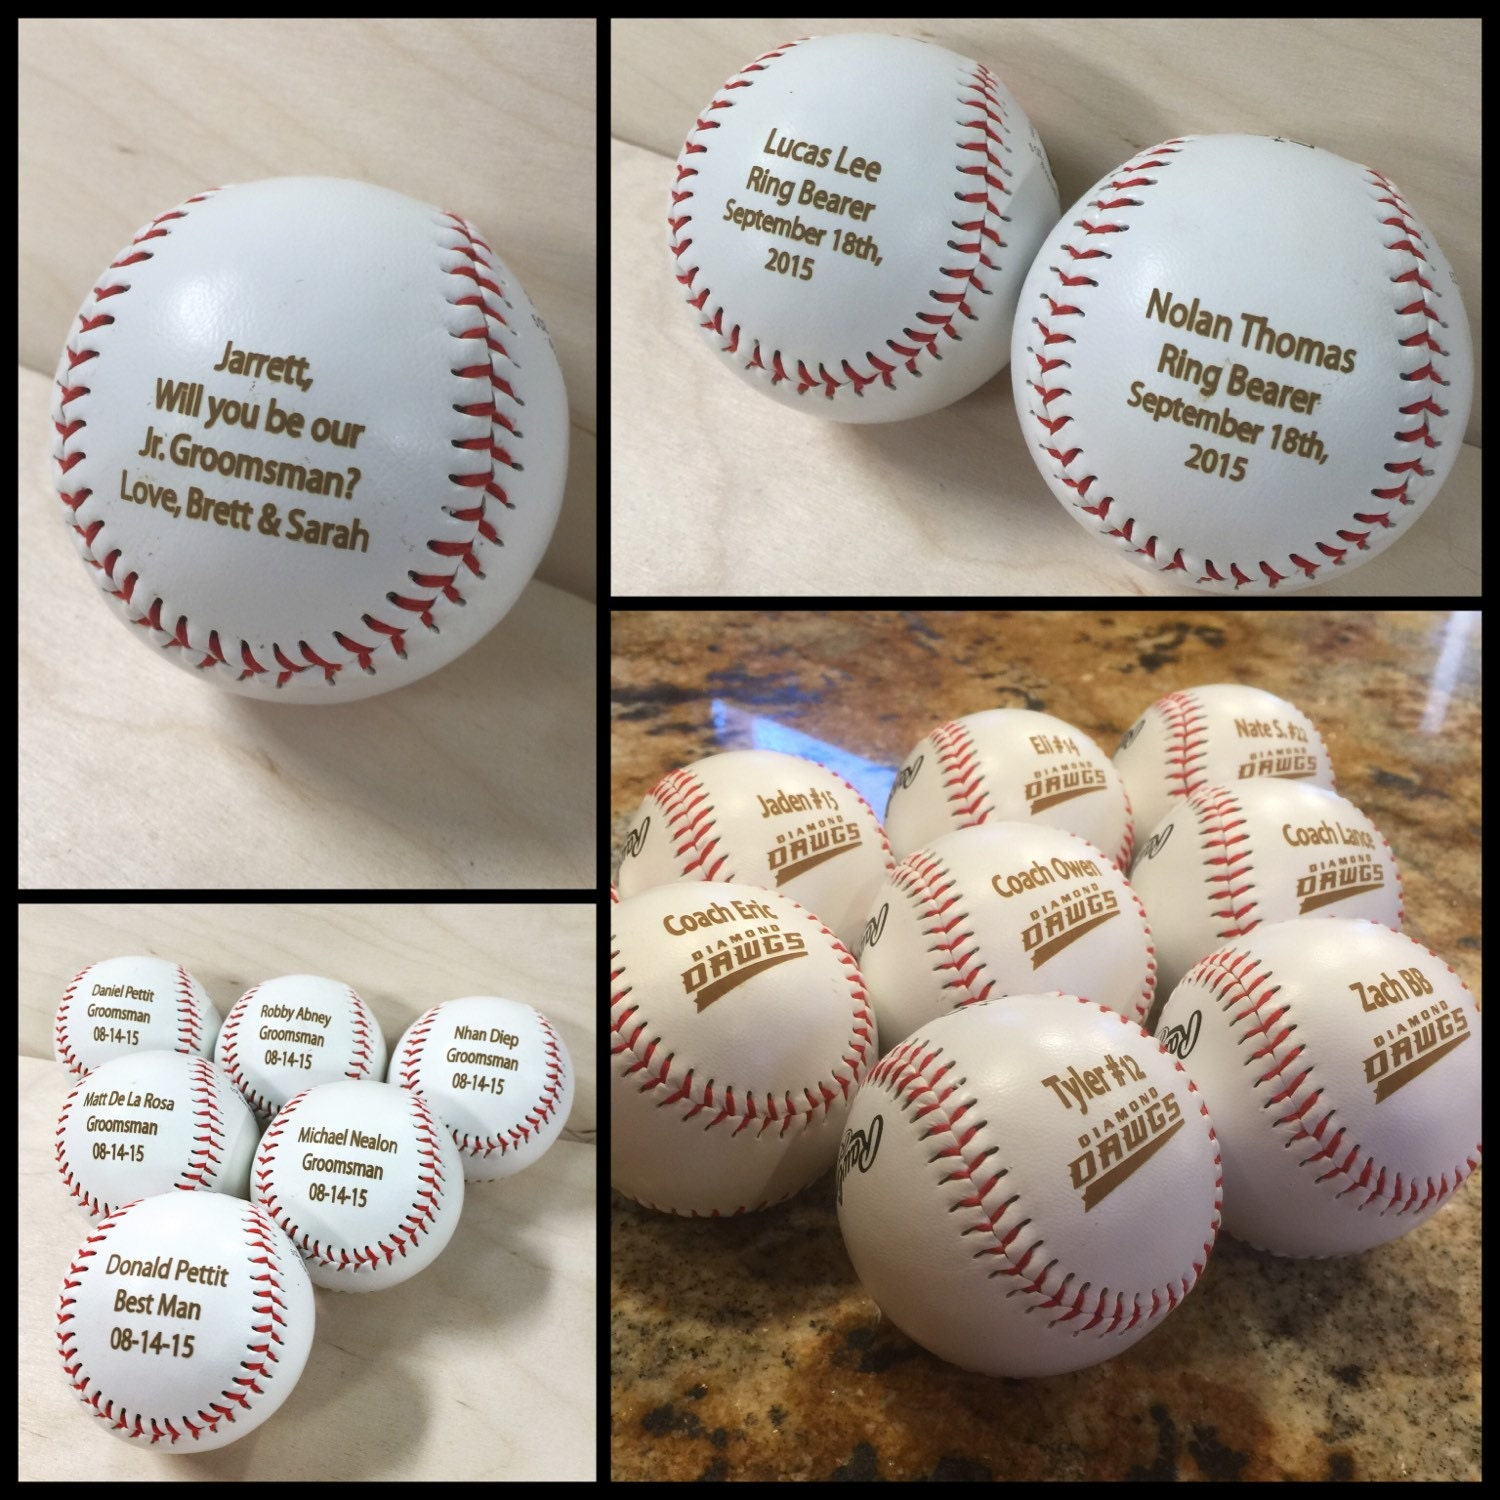 Baseball Wedding Gifts: Engraved Baseball, Ring Bearer Gift, Groomsman Best Man